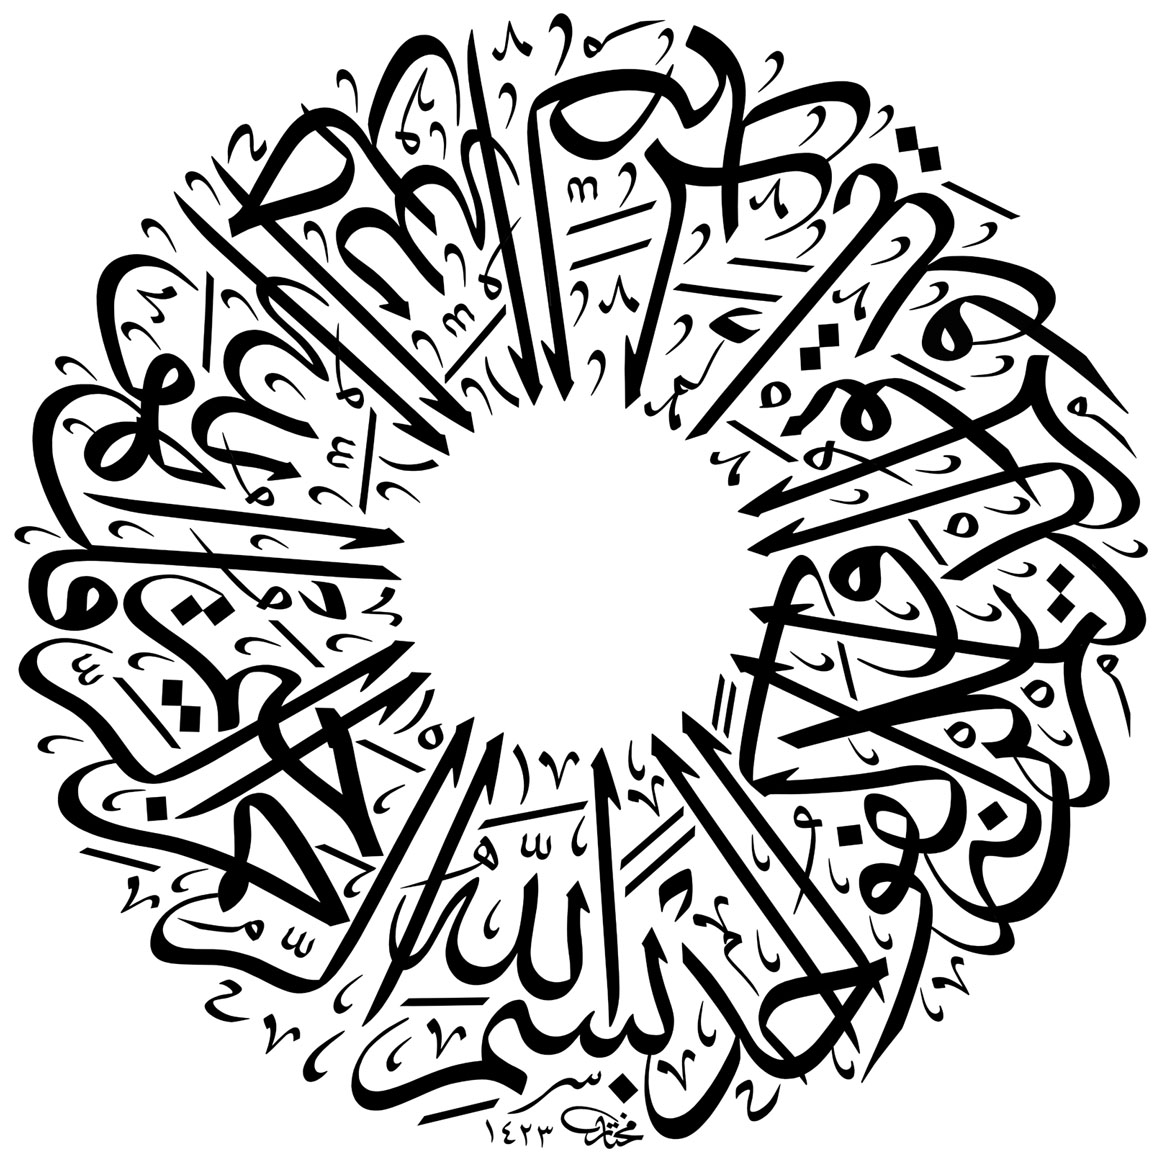 Download the FREE Arabic Calligraphy for any use, such as ornaments ...